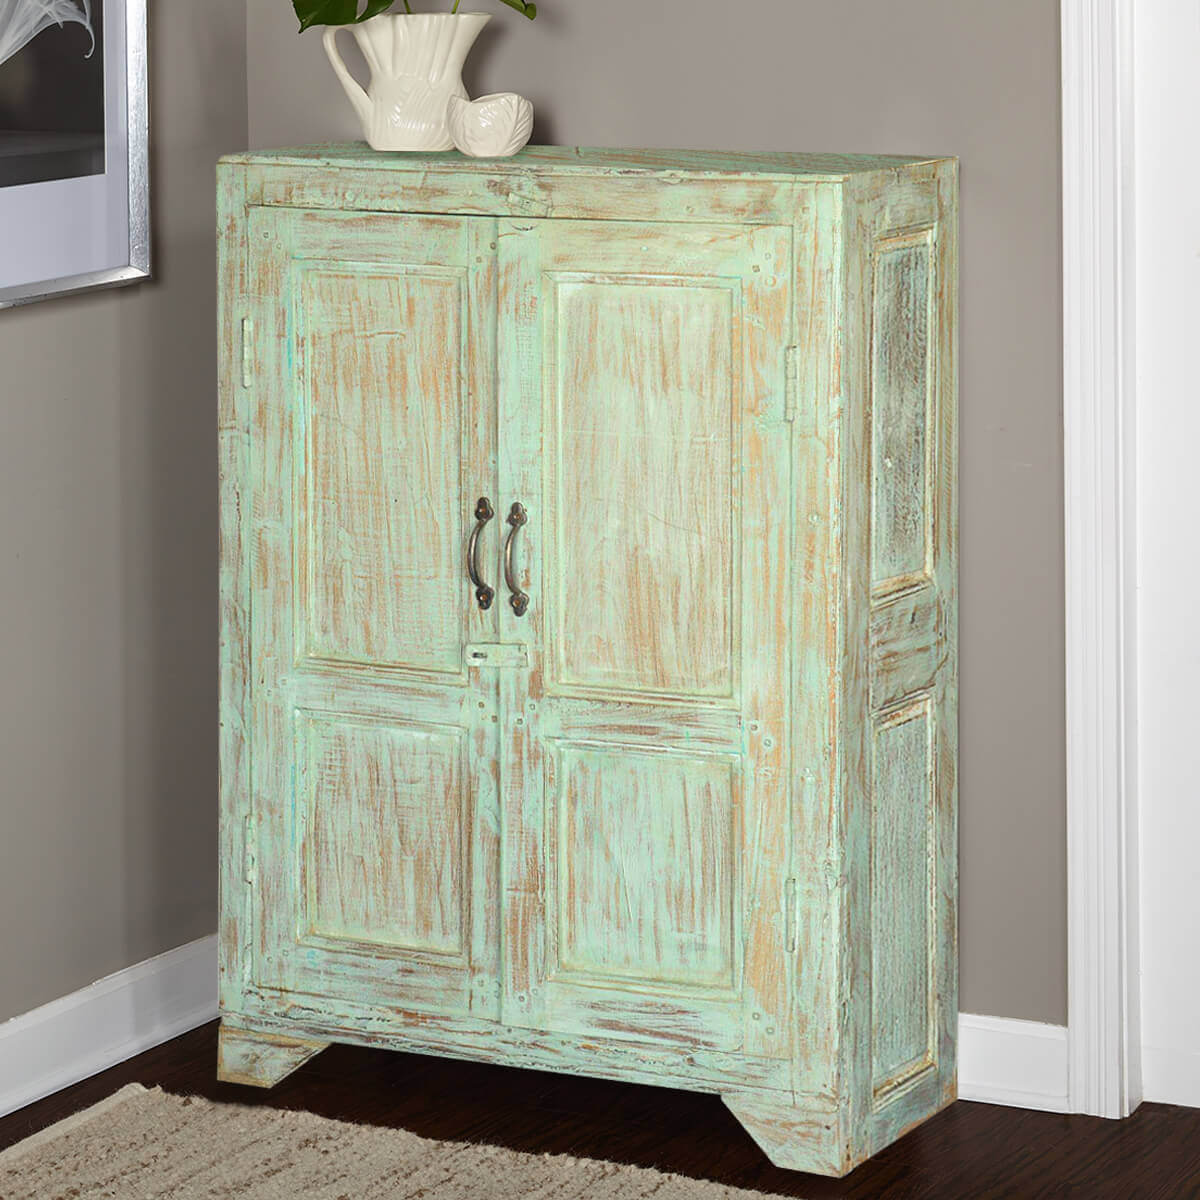 Julian rustic reclaimed wood storage cabinet 2 door small armoire